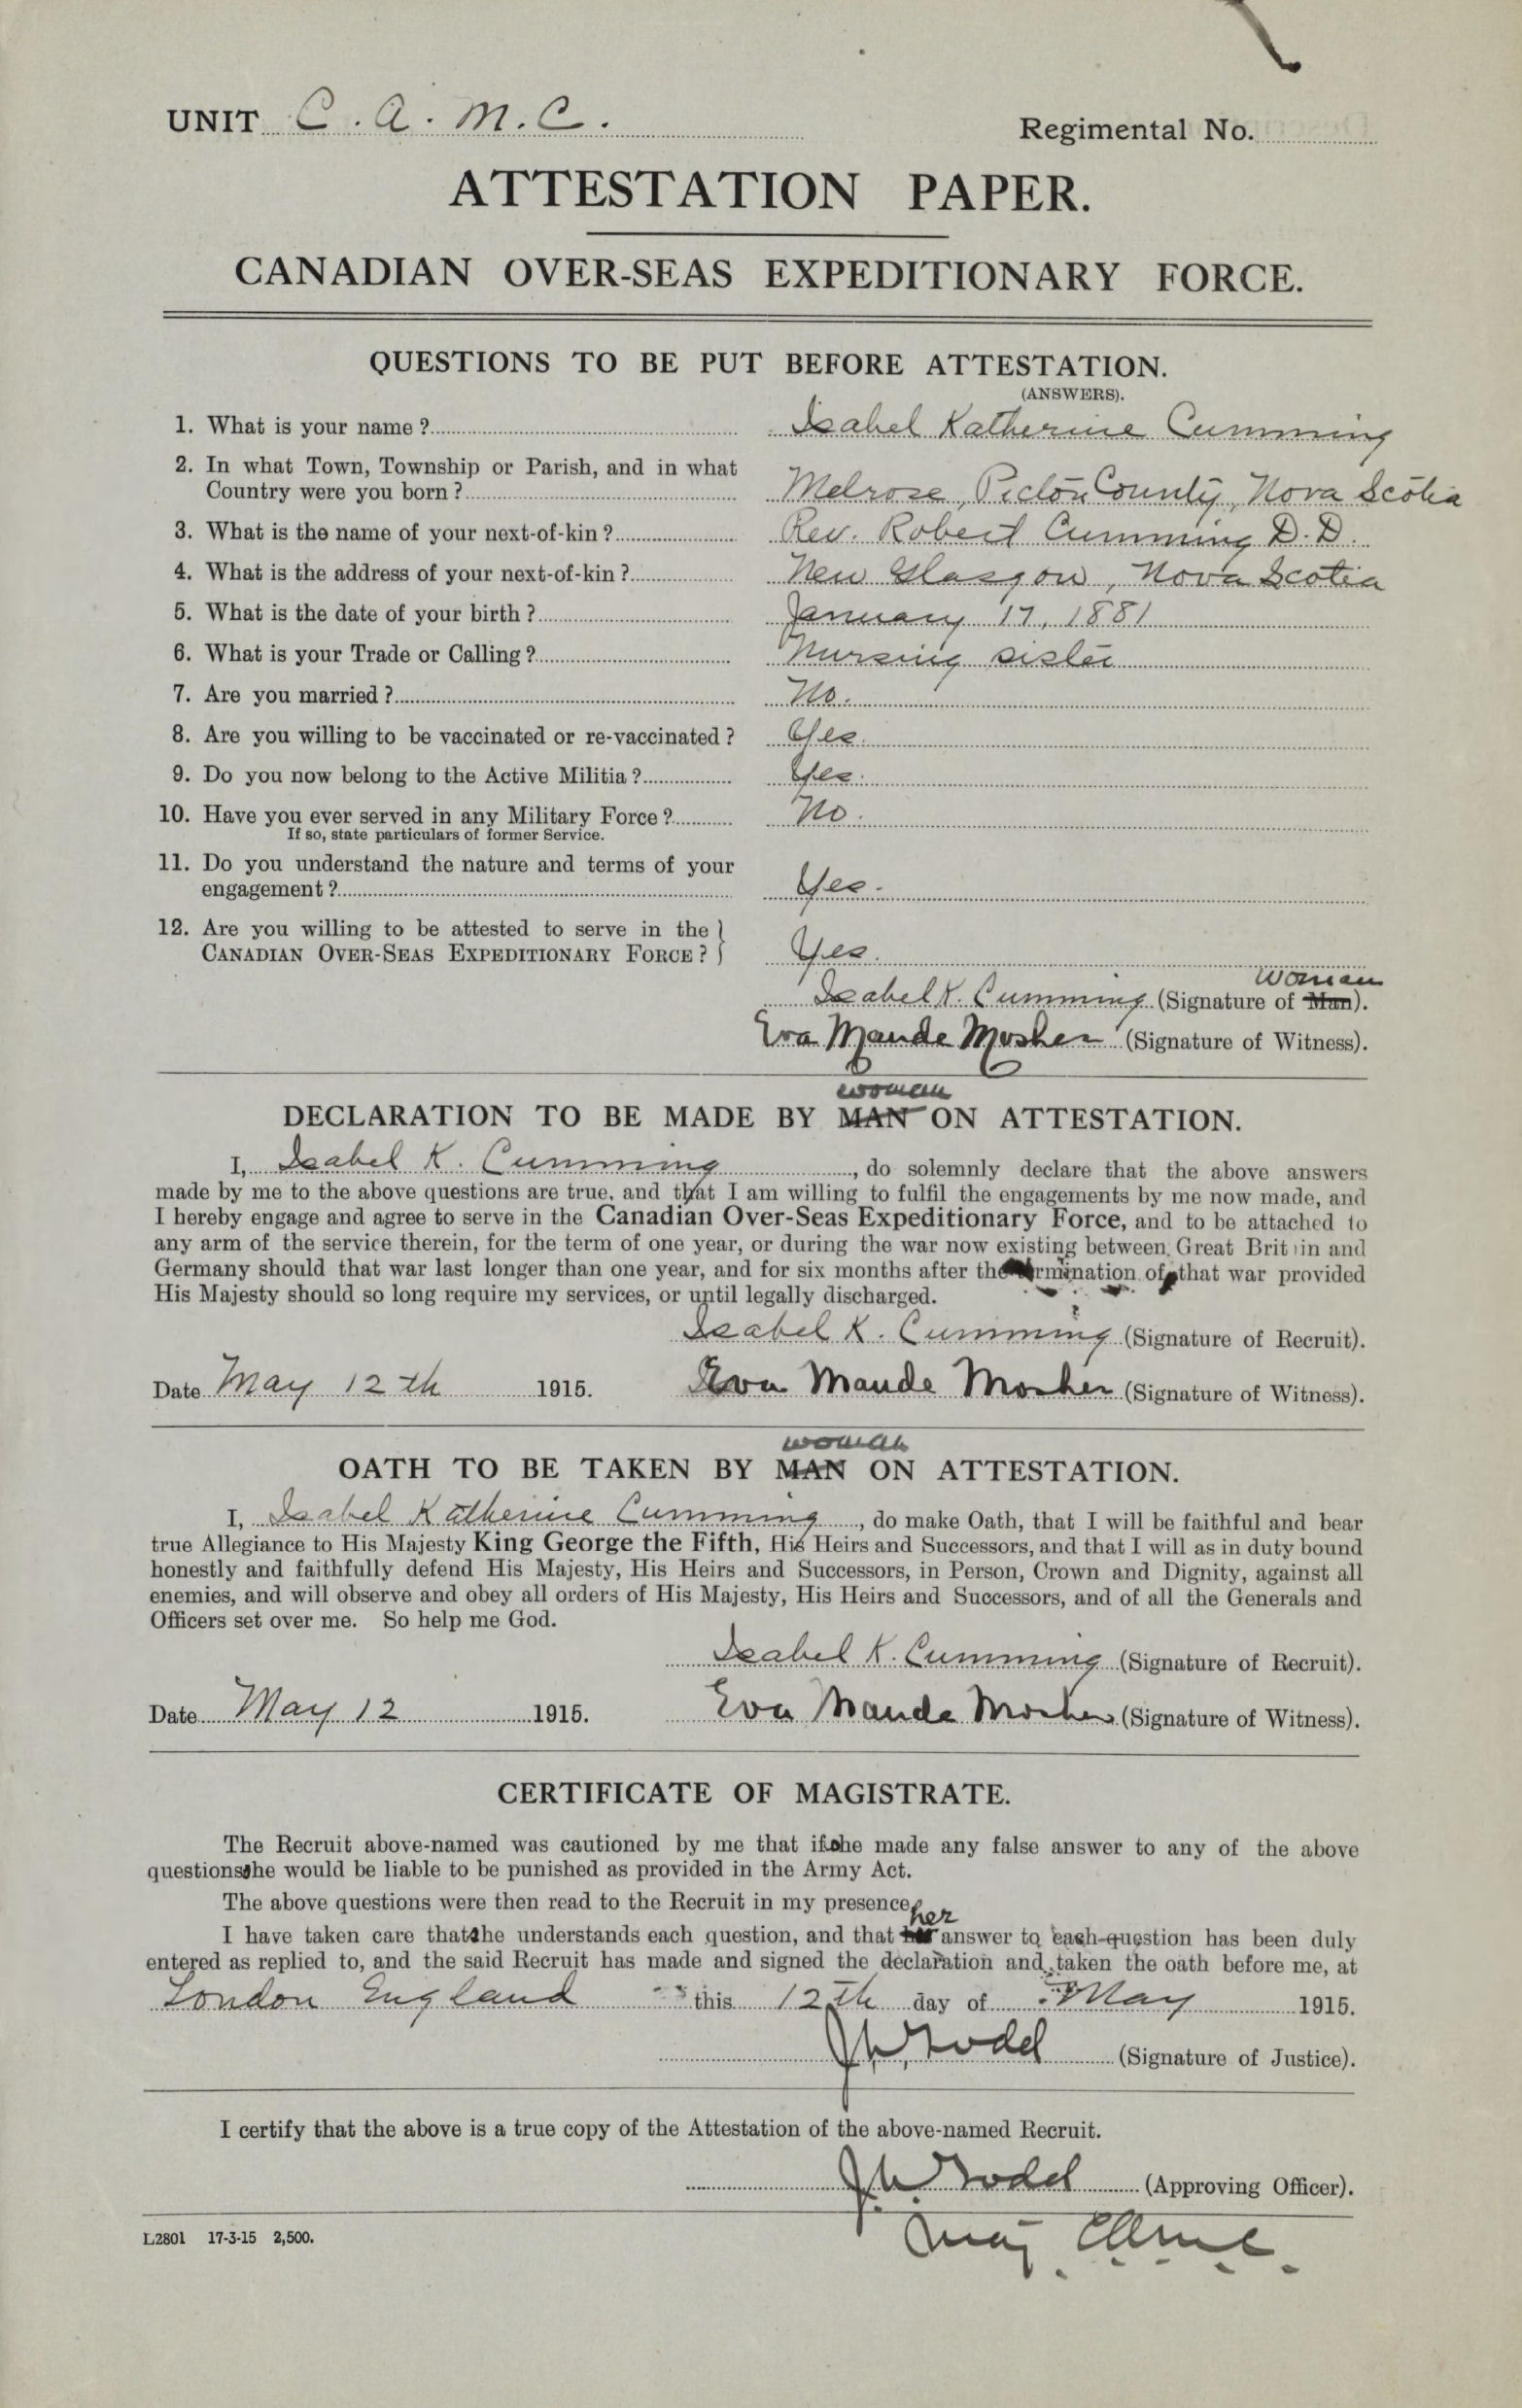 Attestation Paper – Attestation Paper   Source:  Library and Archives Canada: Soldiers of the First World War